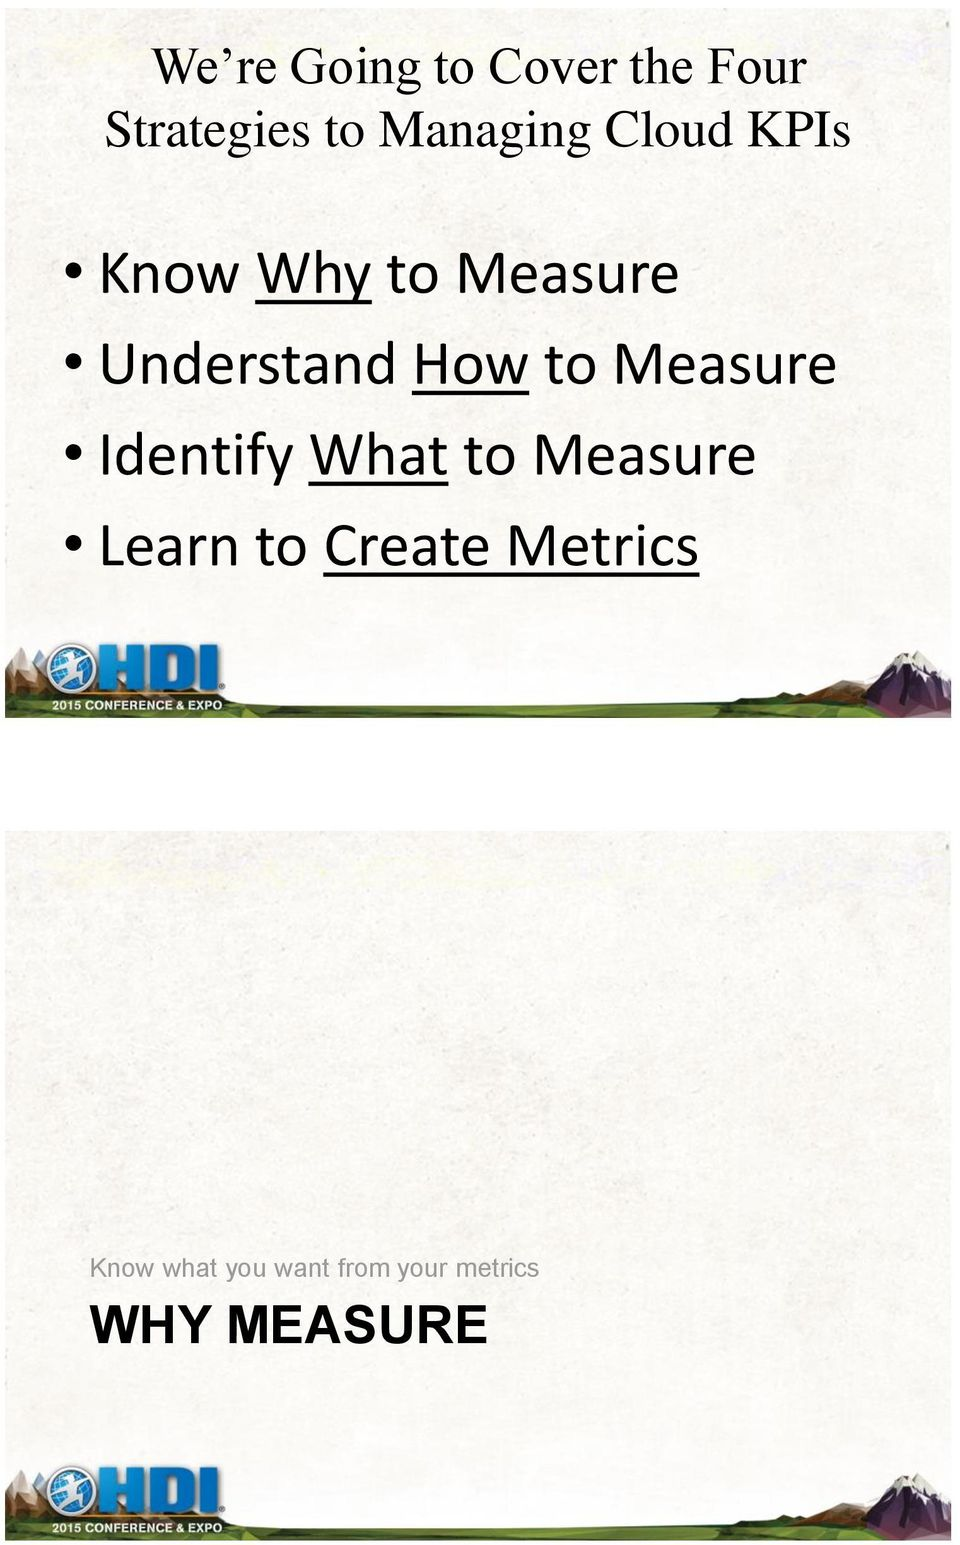 How to Measure Identify What to Measure Learn to